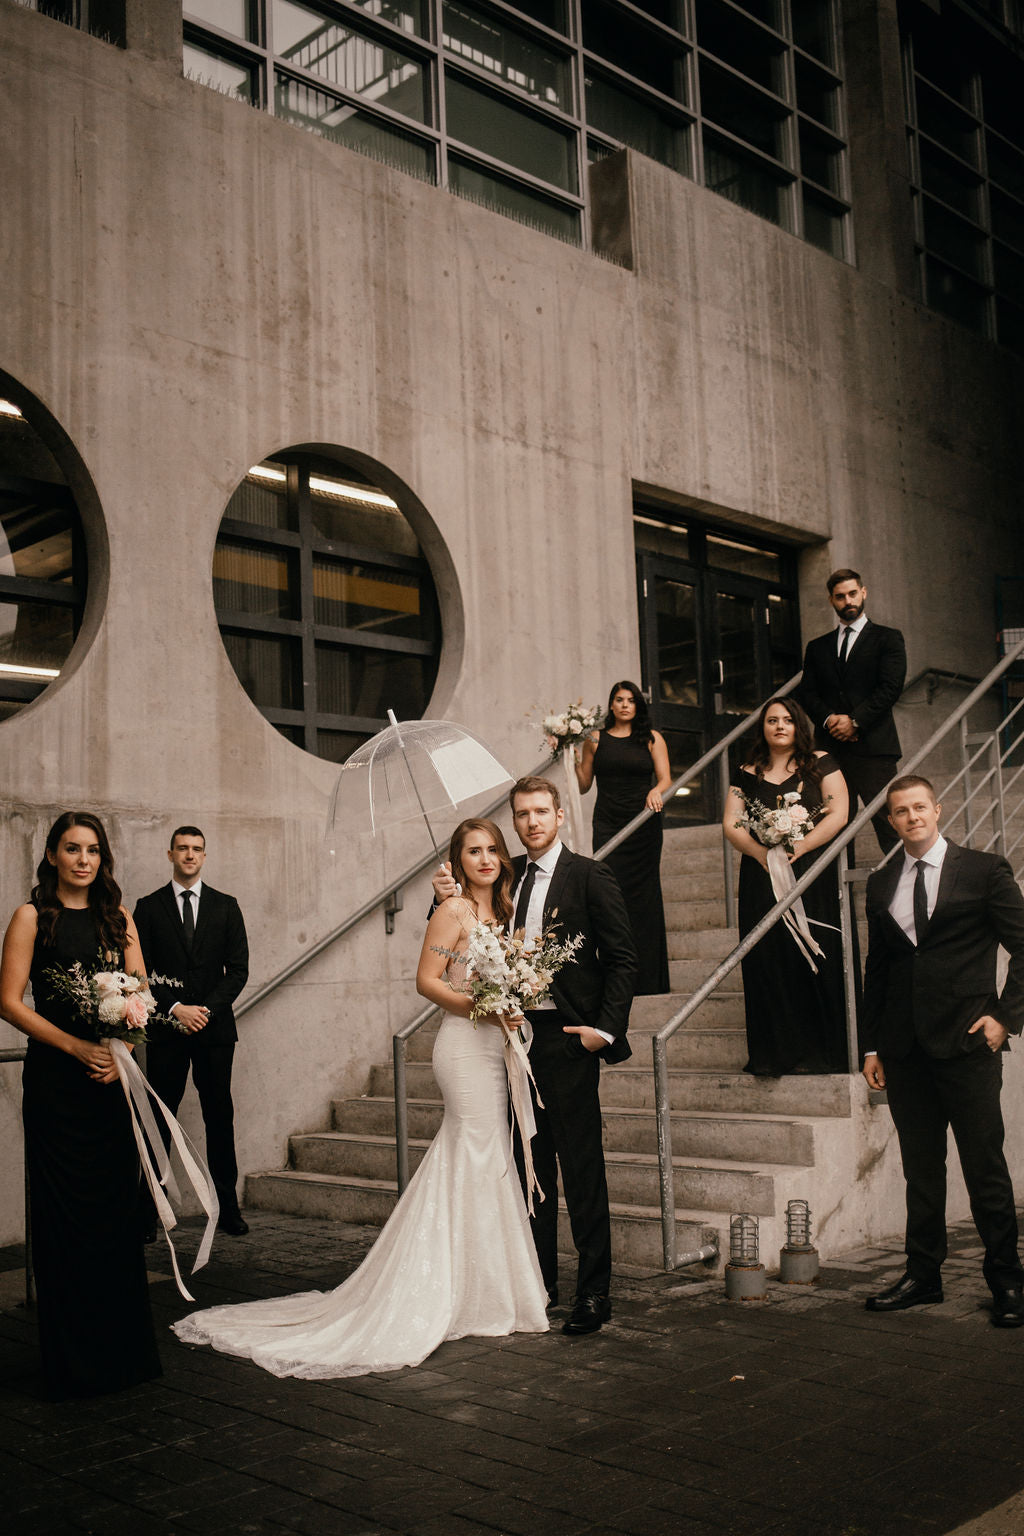 Becca & David's Intimate Vancouver Wedding